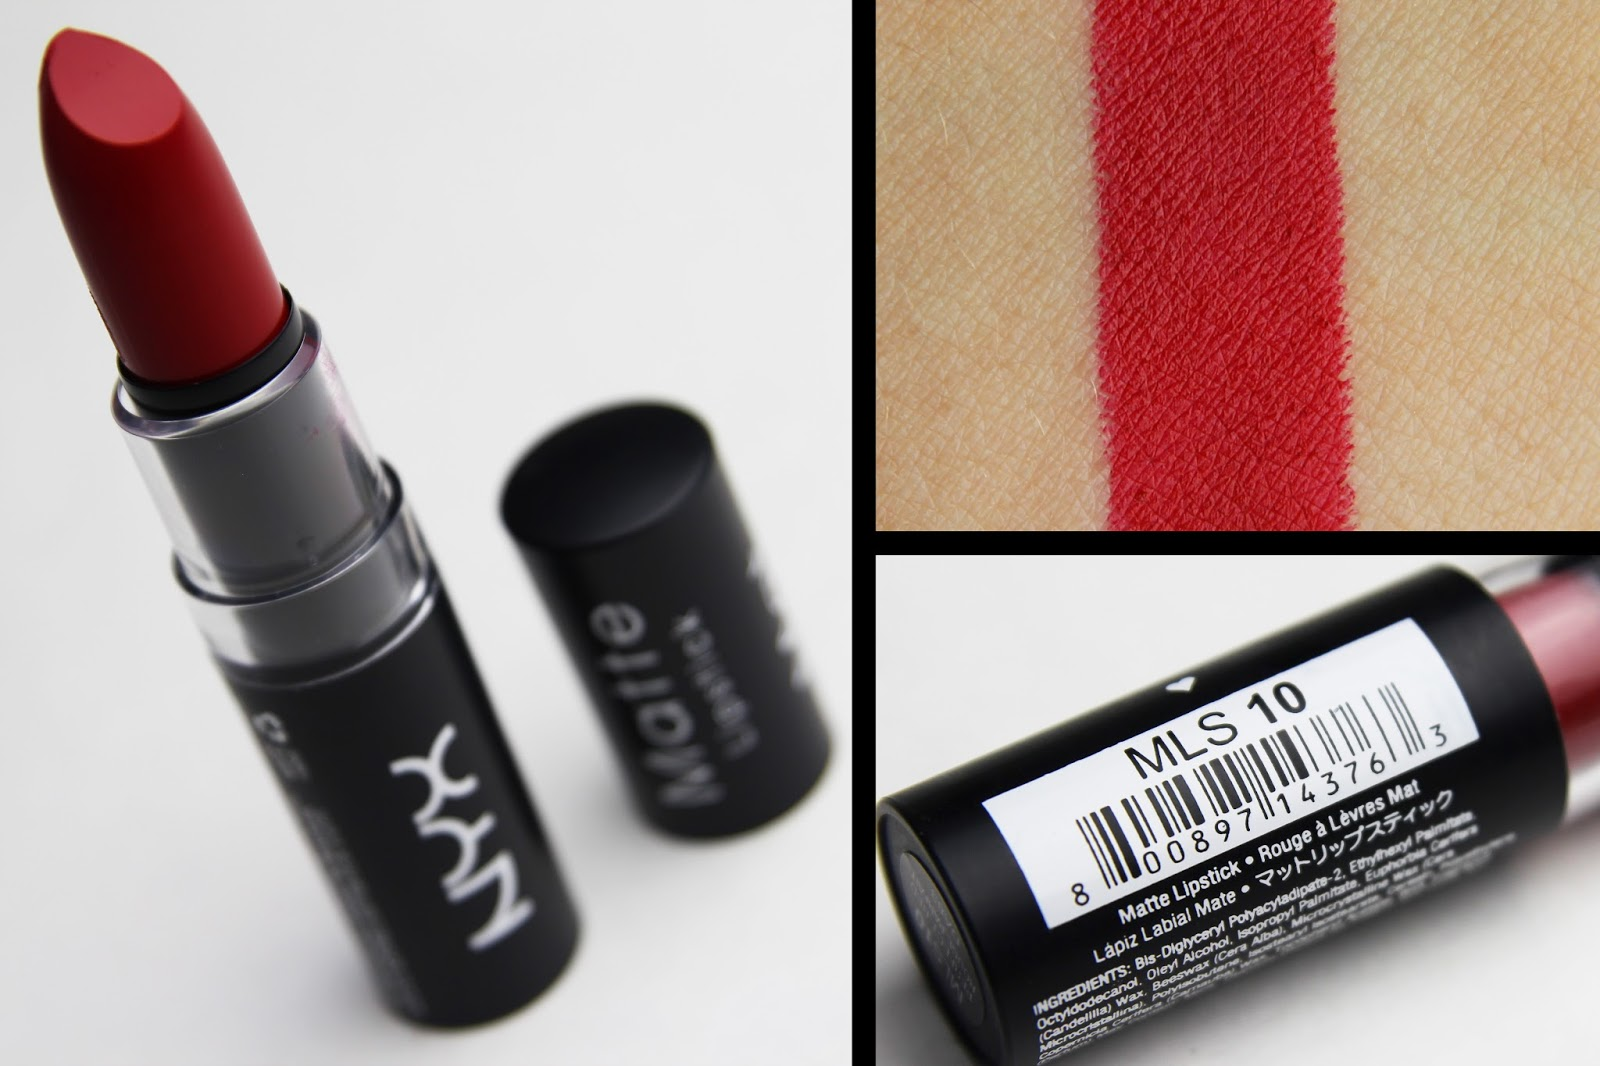 AndreaMarie - YT: NYX Matte Lipstick in Perfect Red || Review